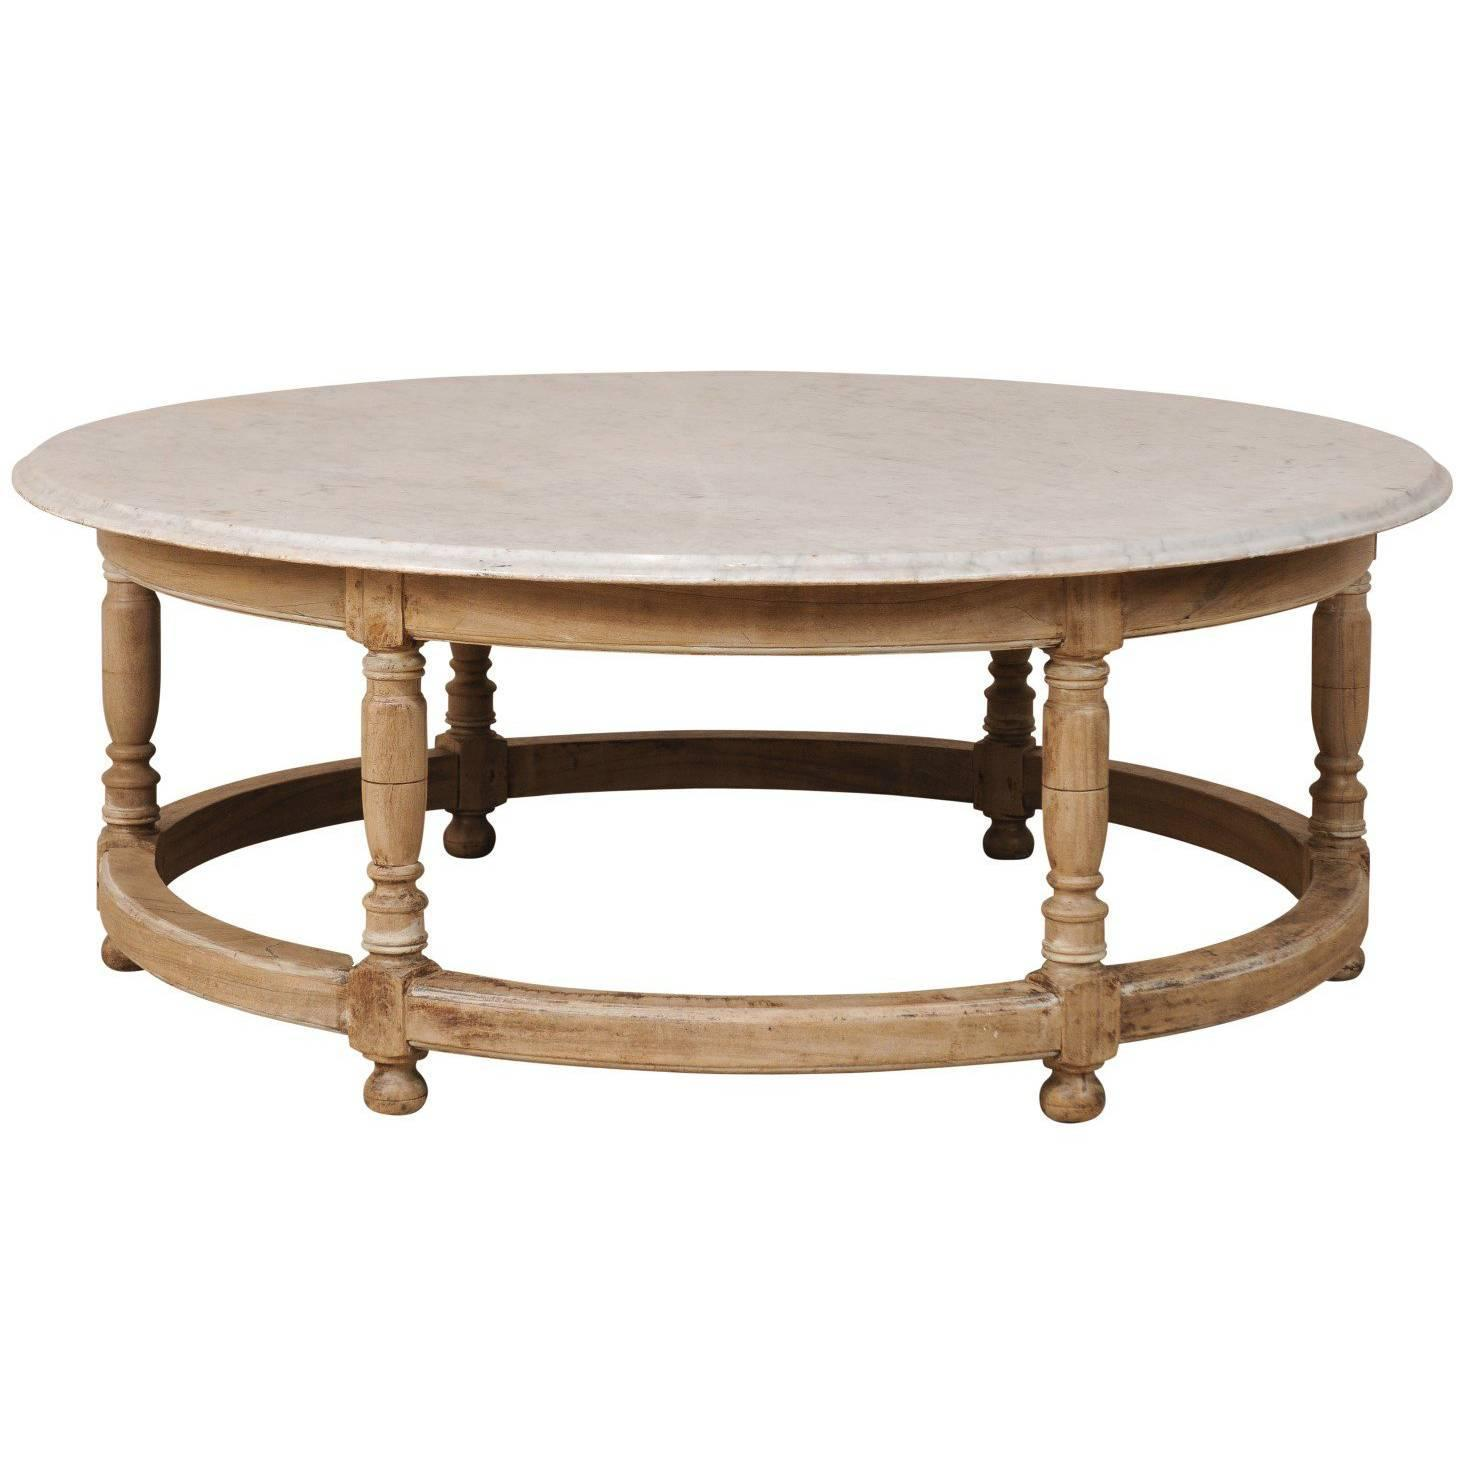 White Marble Top French Over Sized Round Wood Coffee Table with